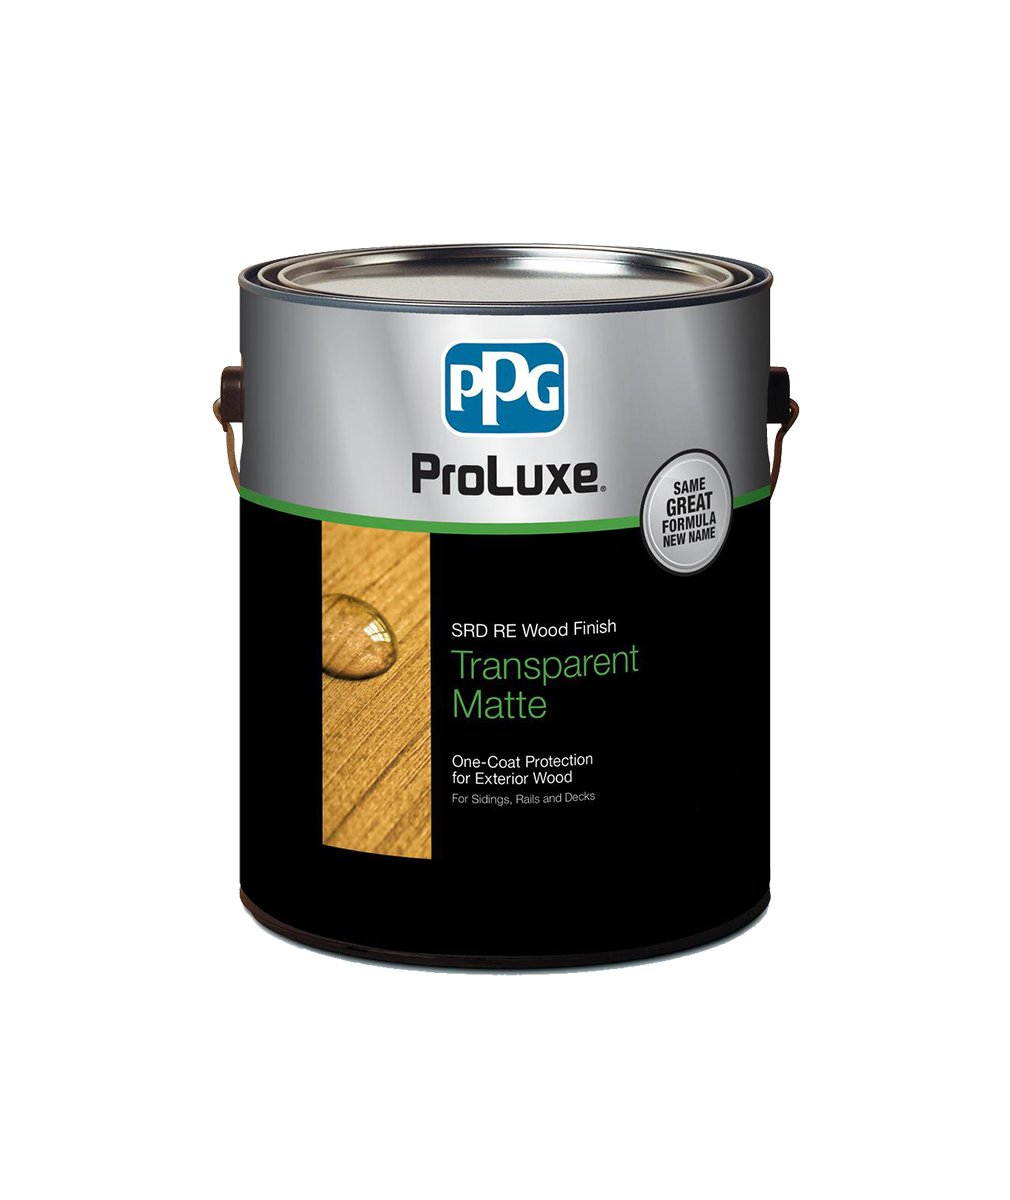 Sikkens Proluxe SRD RE Wood Finish available at Clement's Paint in Austin, TX.